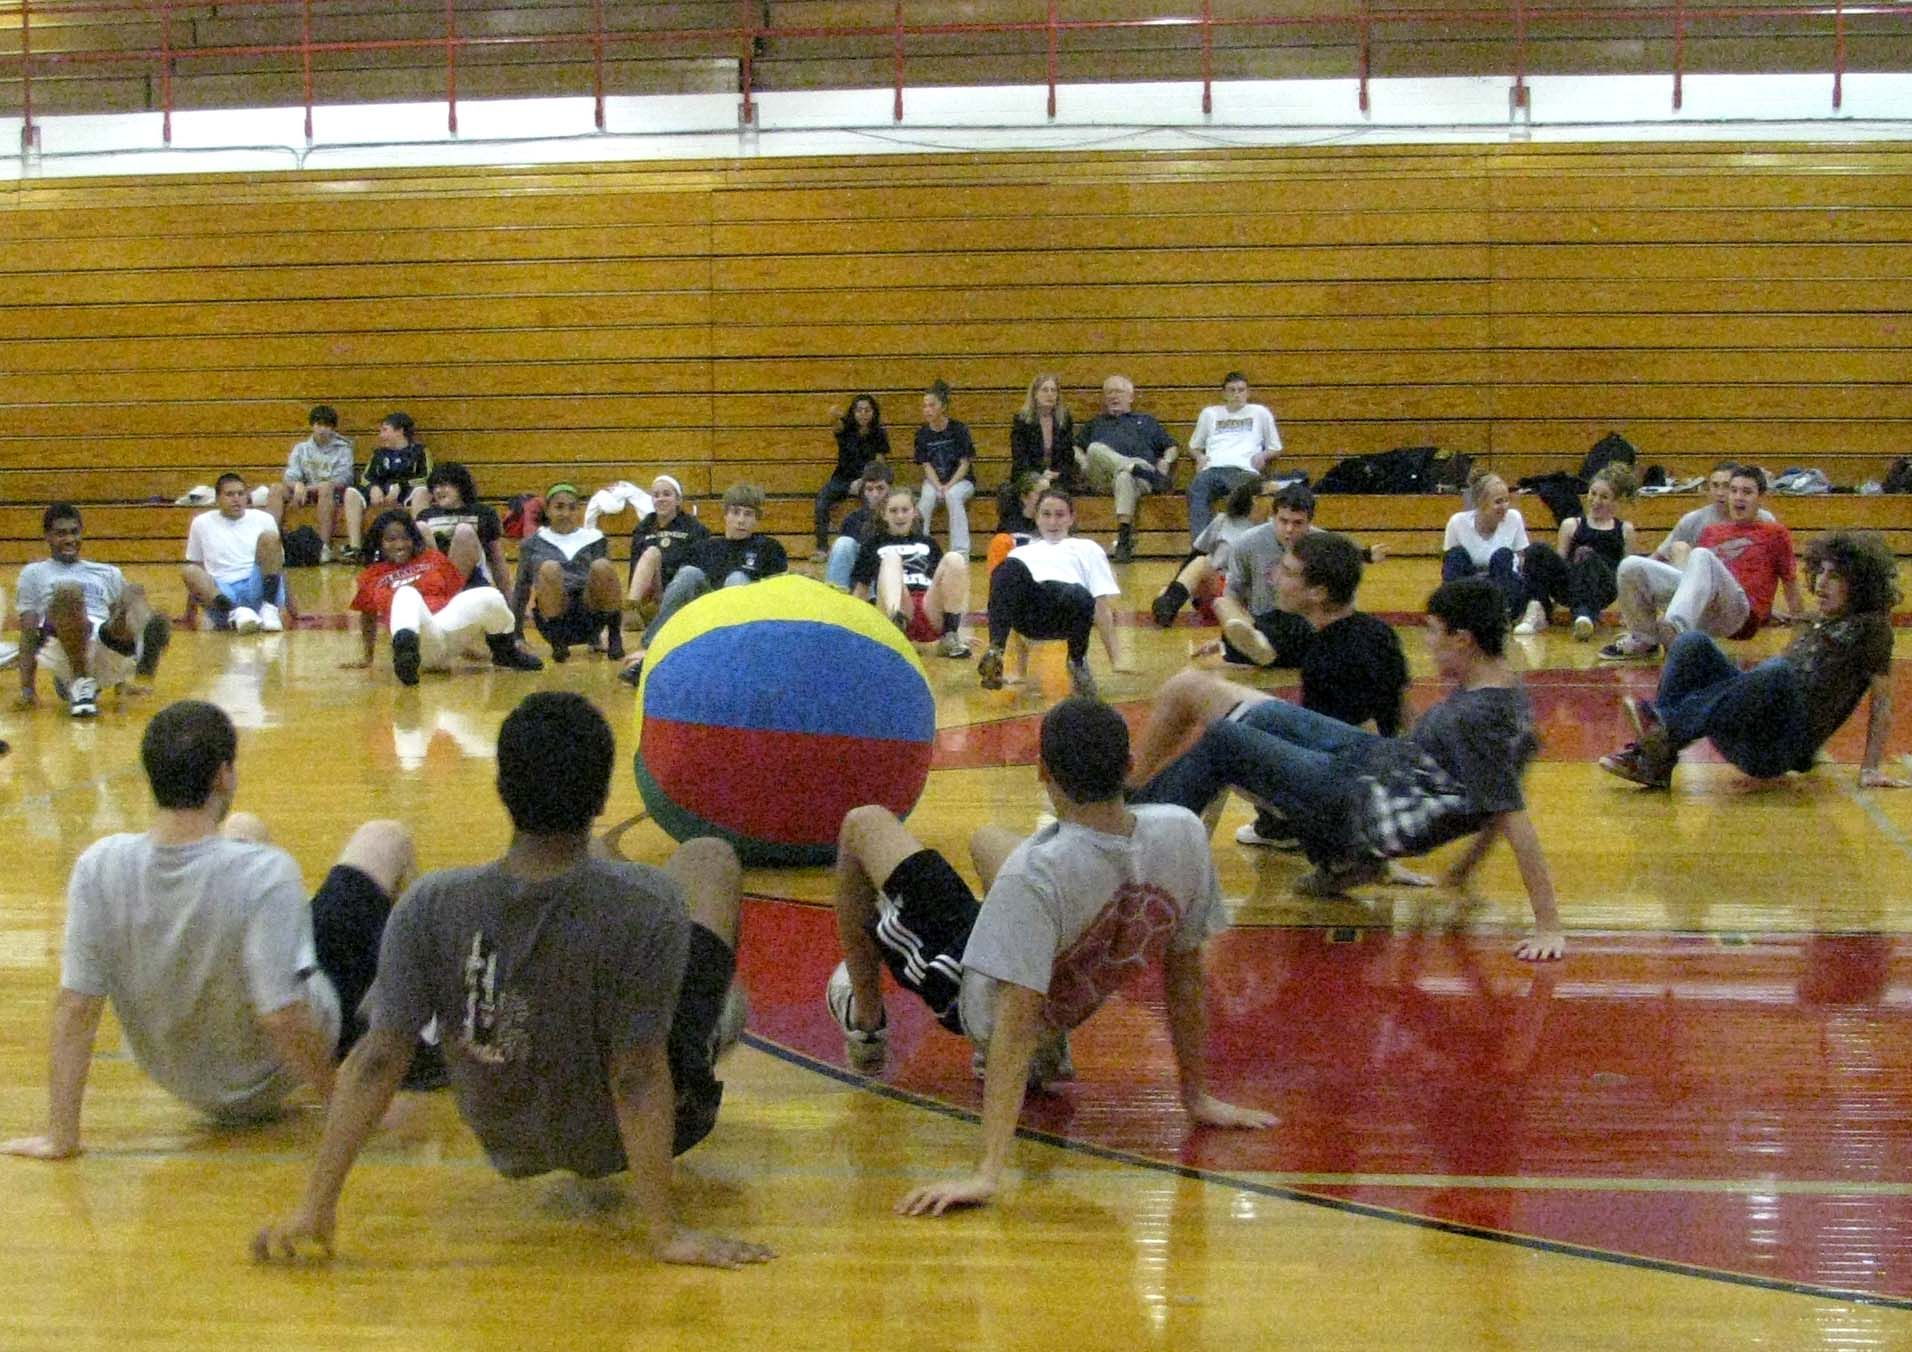 IMG_6124.JPG (1912×1352) Physical education games, Group